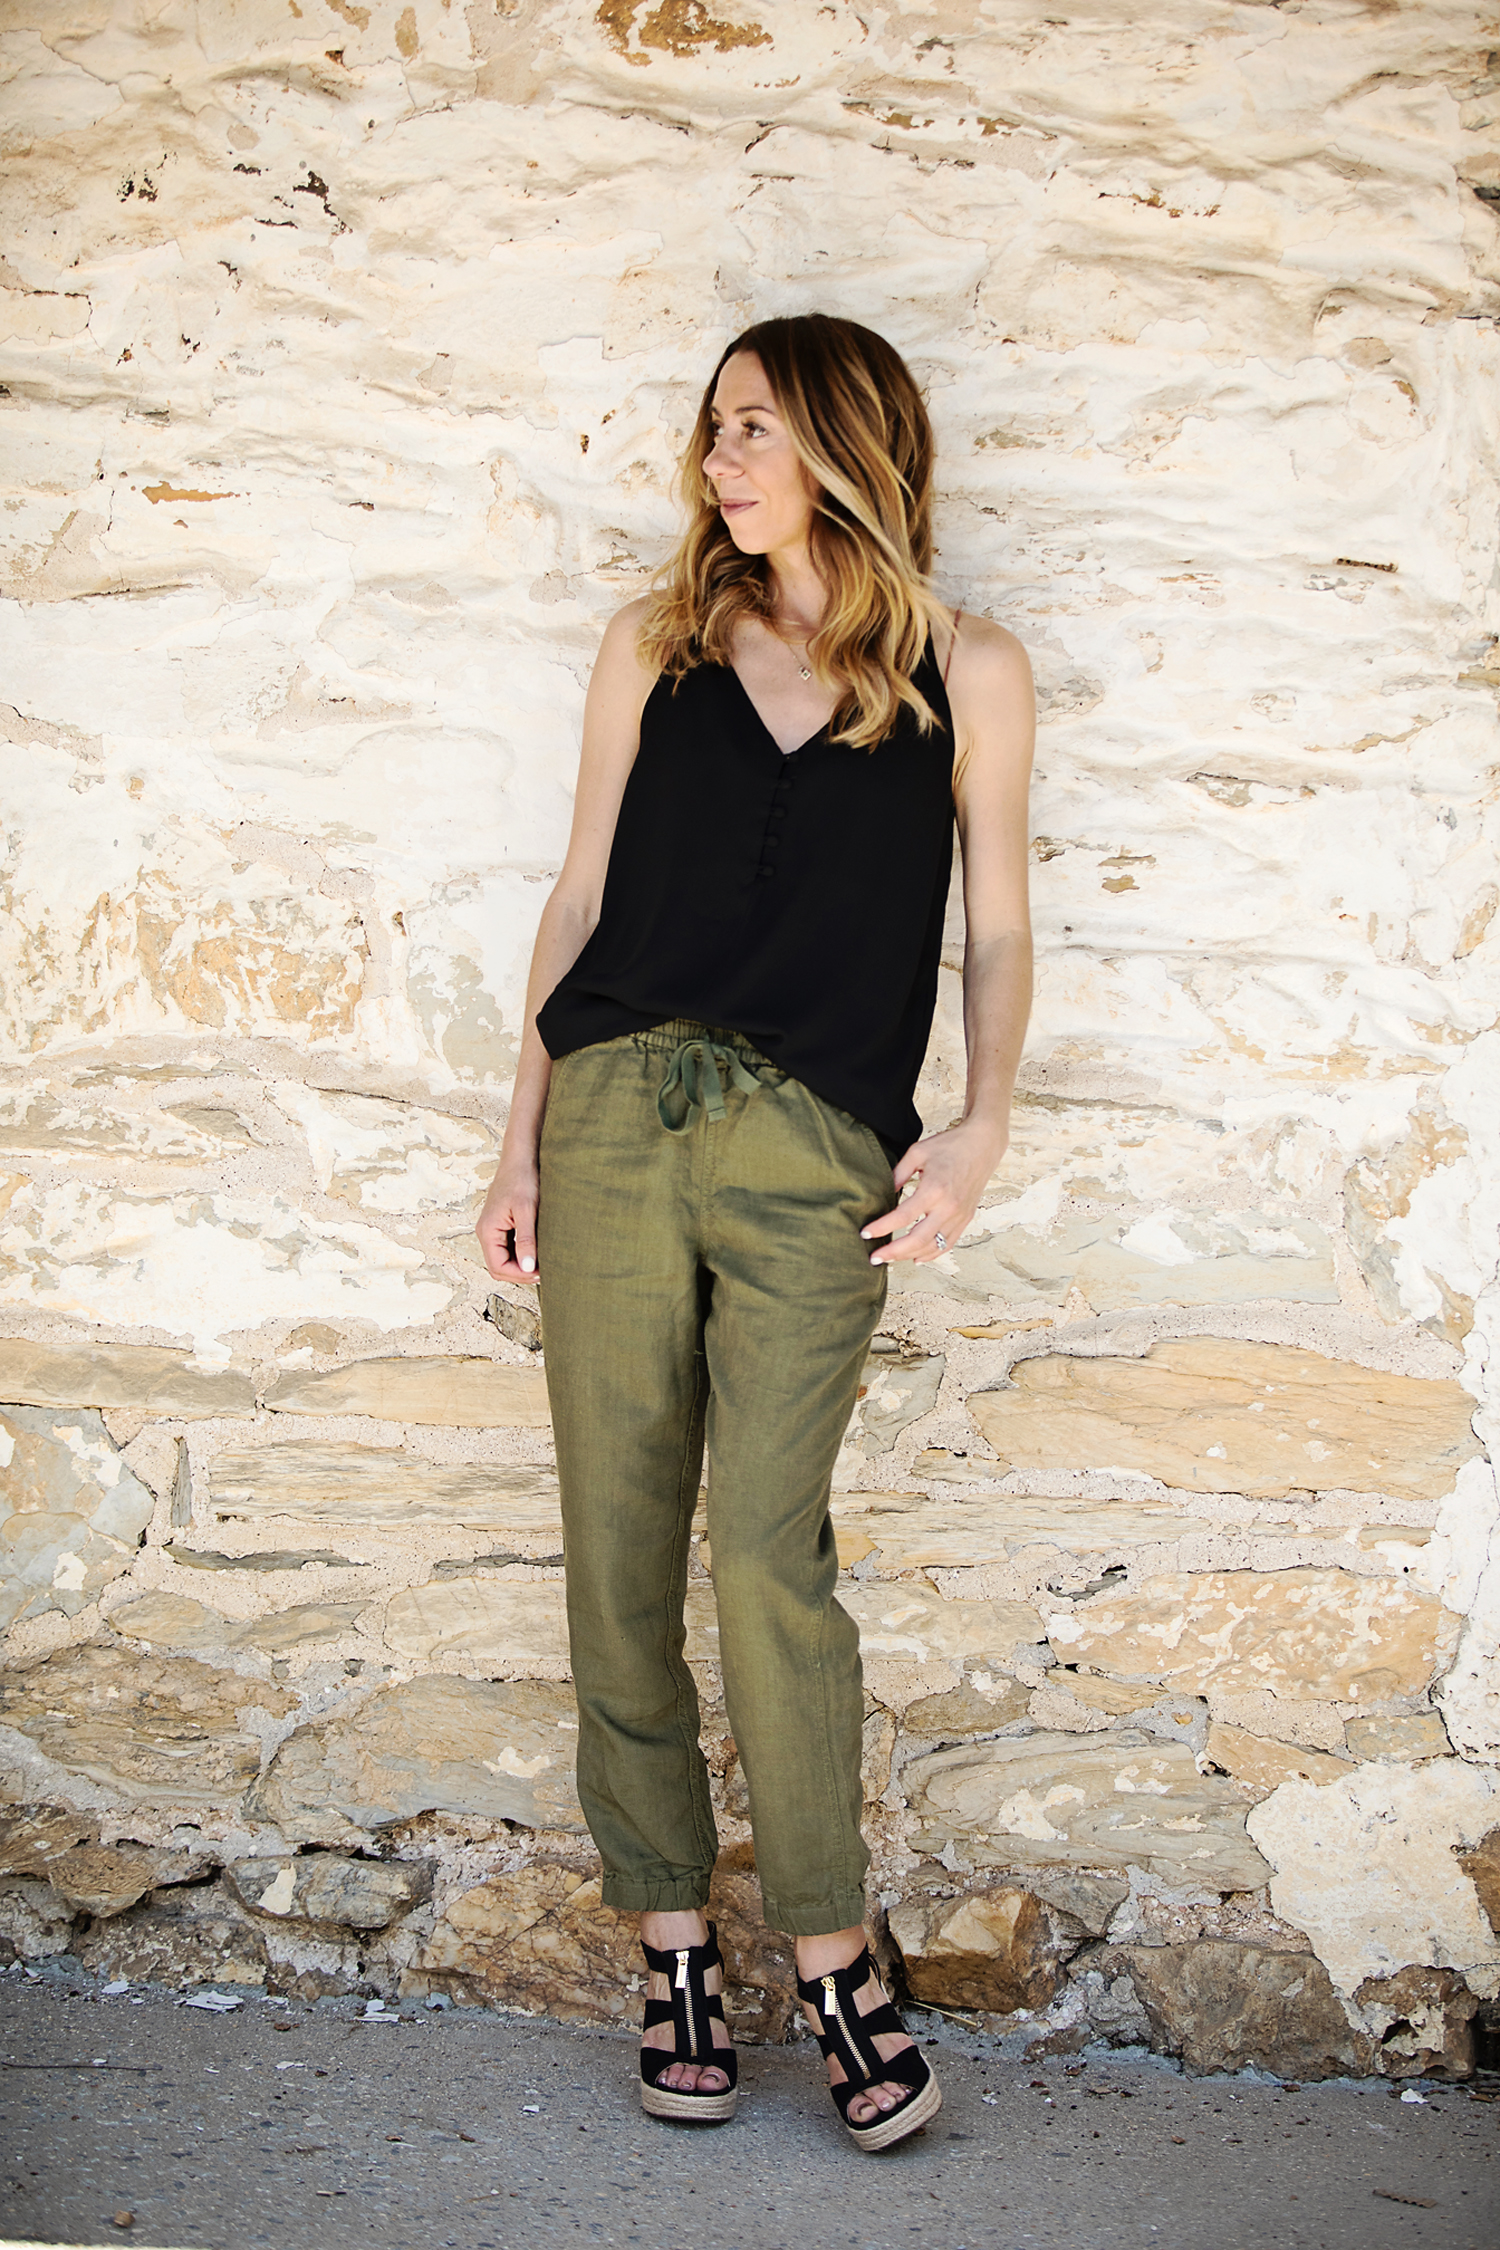 The Motherchic wearing J.crew Seaside pant and loft cami